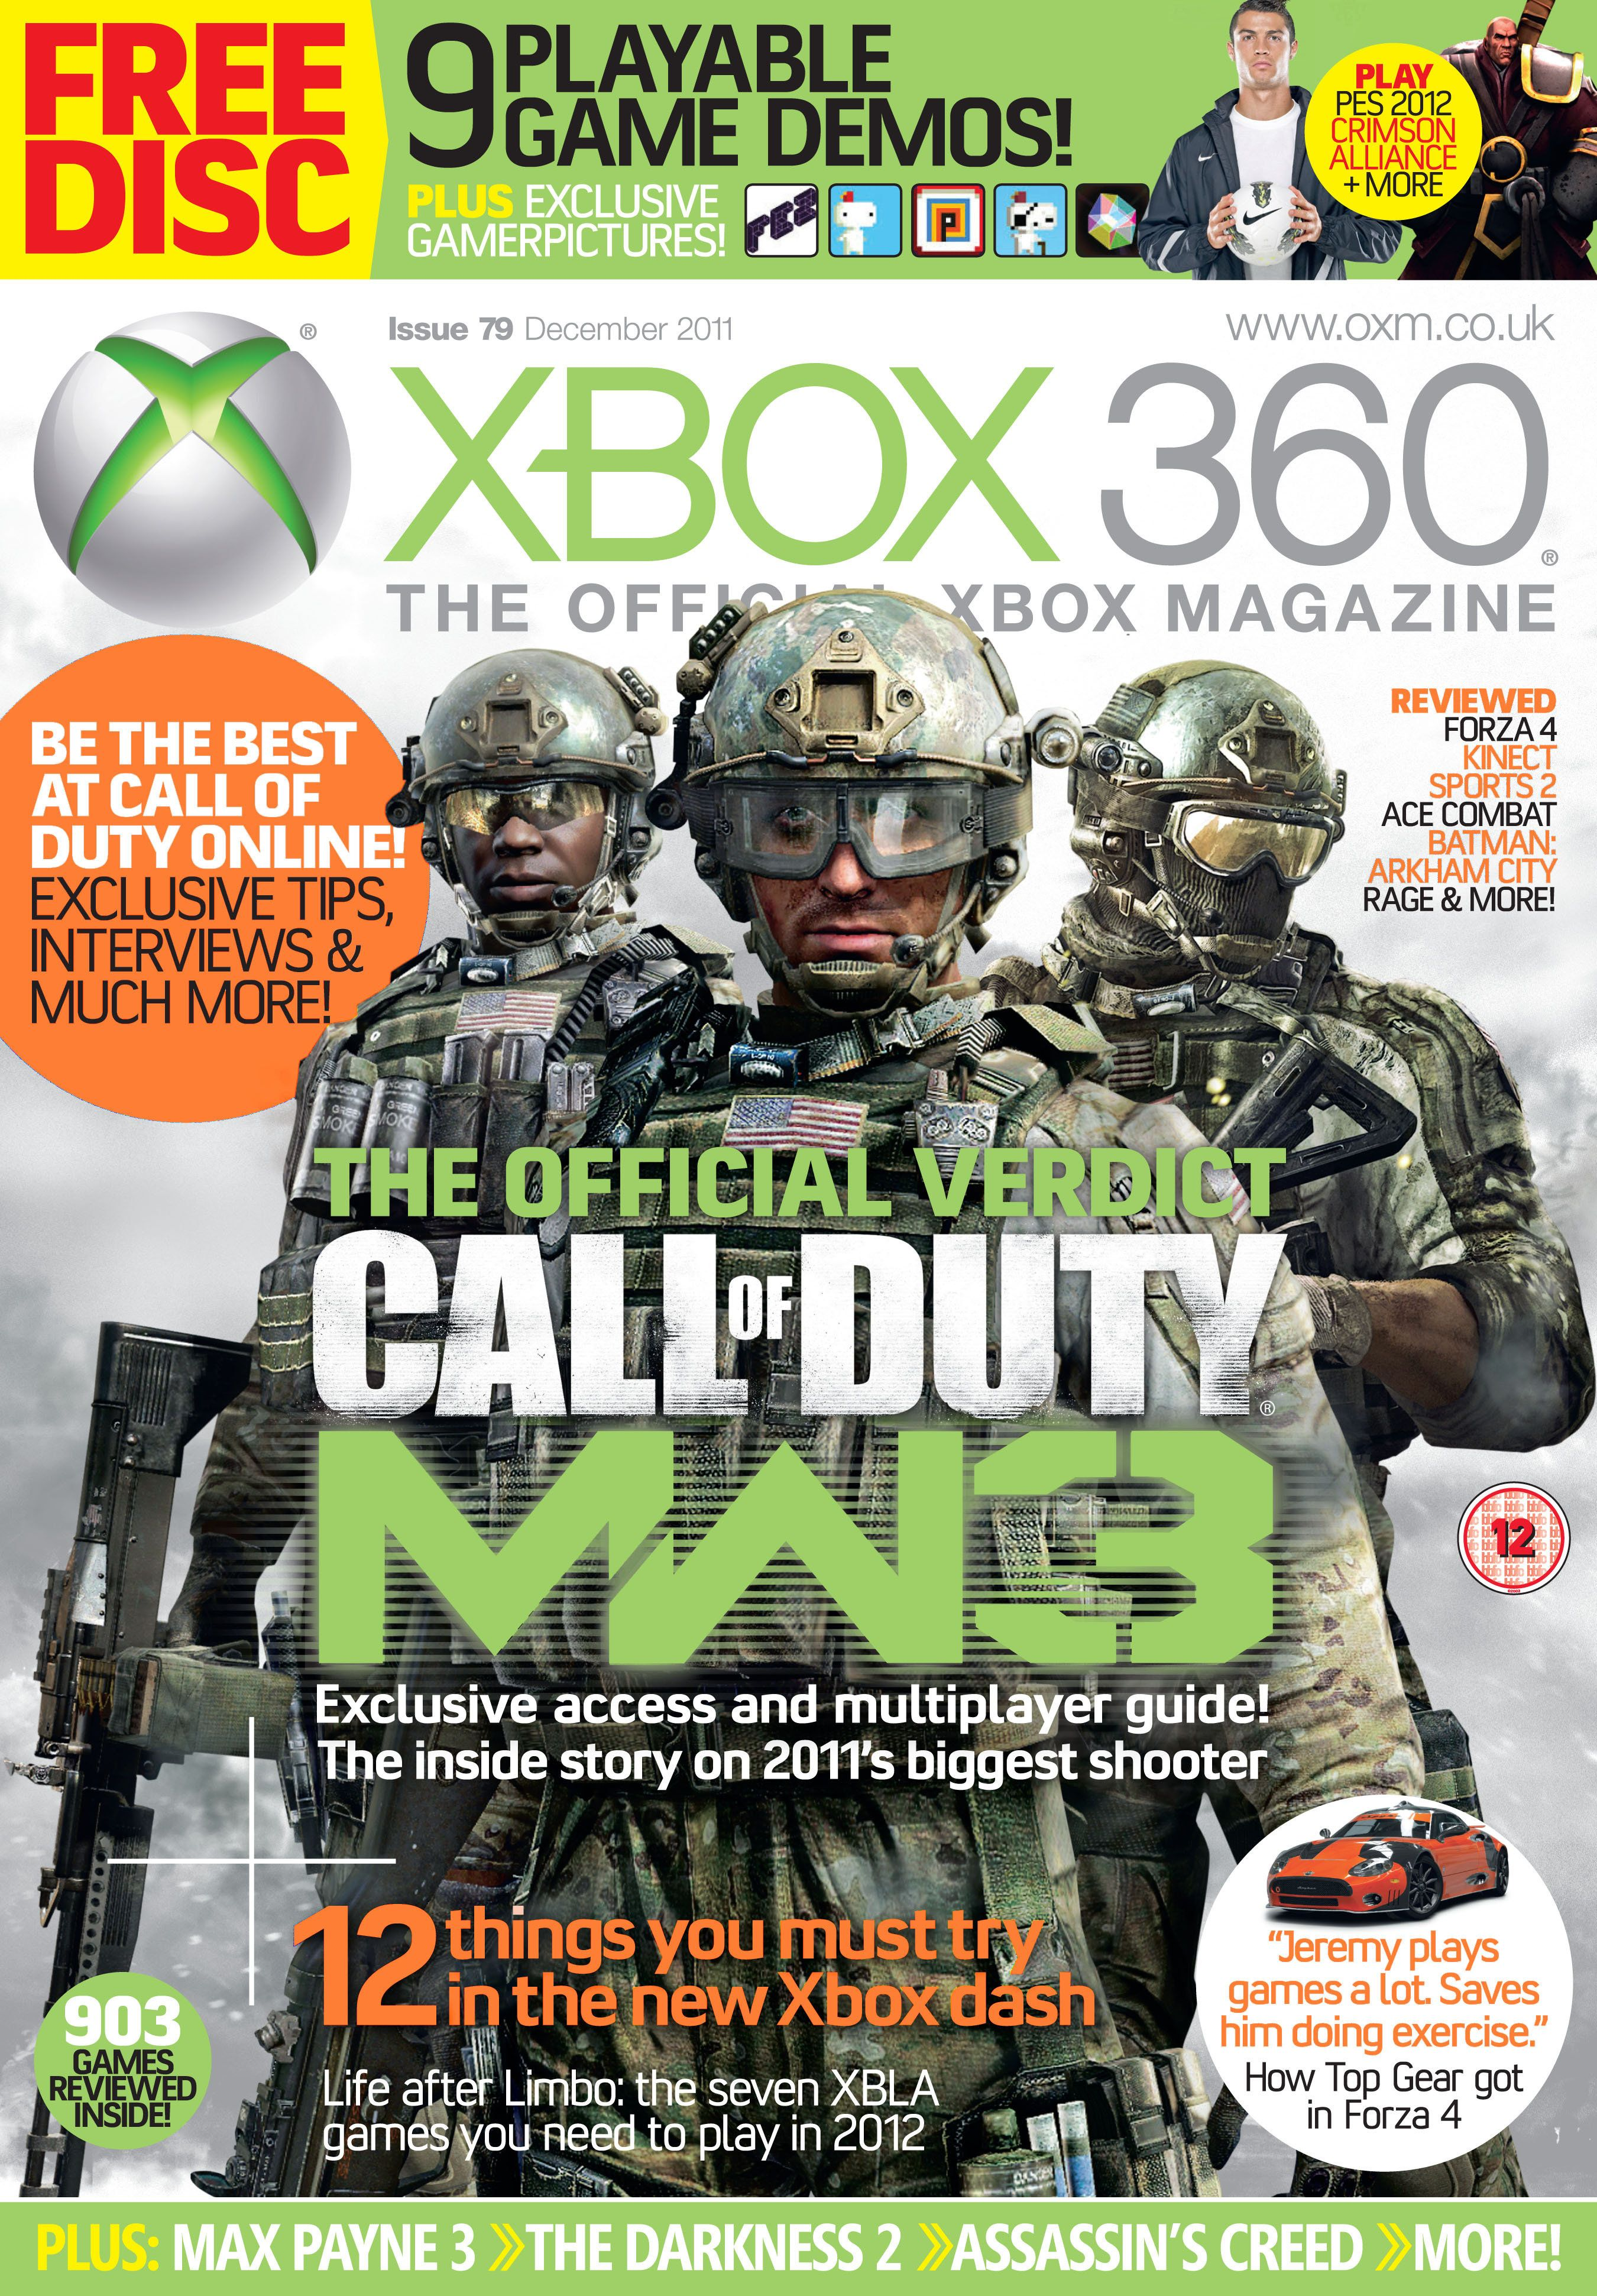 Xbox 360 The Official Magazine www.oxm.co.uk